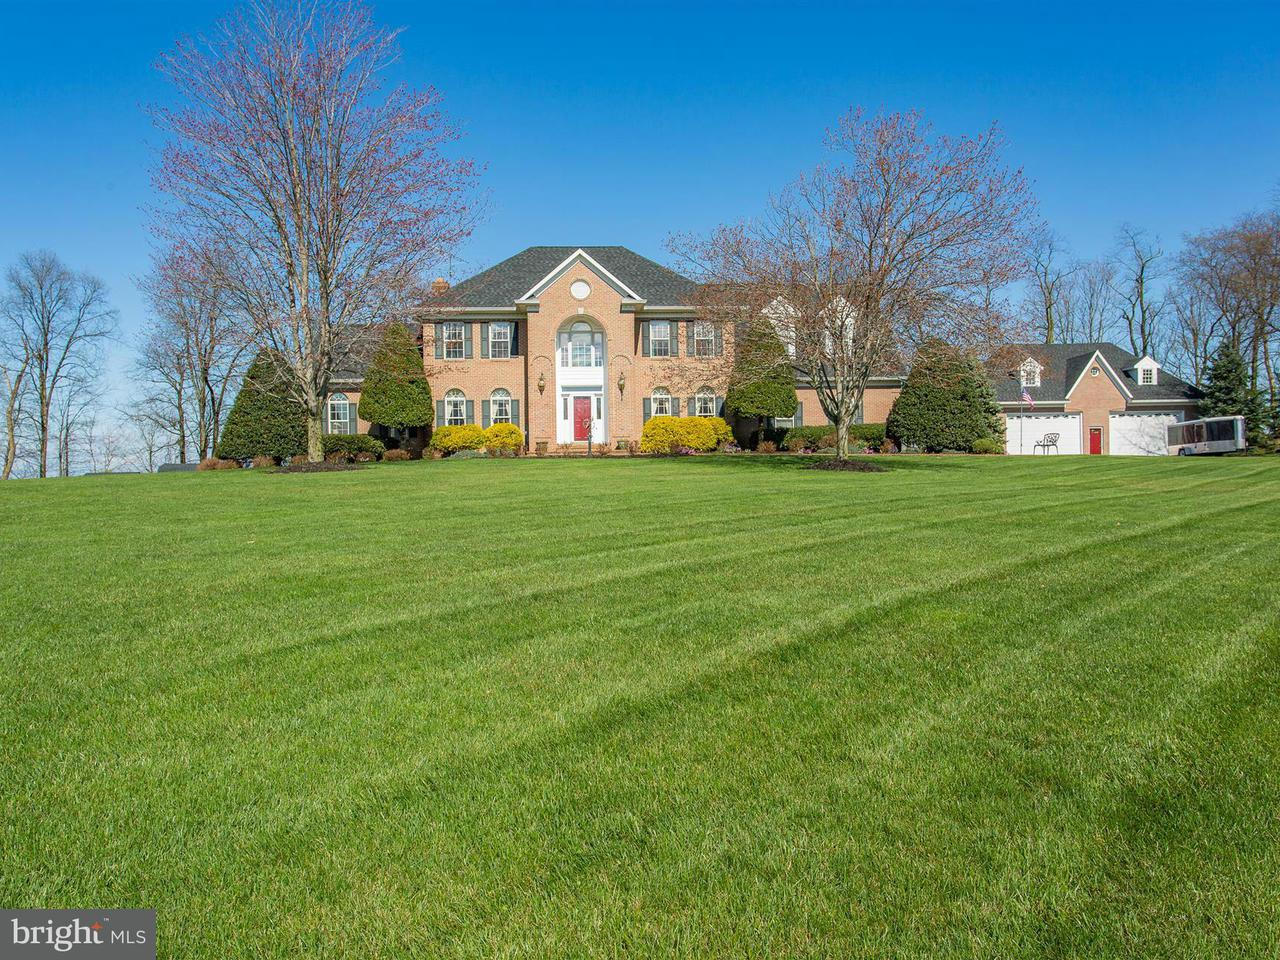 Single Family Home for Sale at 11830 WELLER HILL Drive 11830 WELLER HILL Drive Monrovia, Maryland 21770 United States